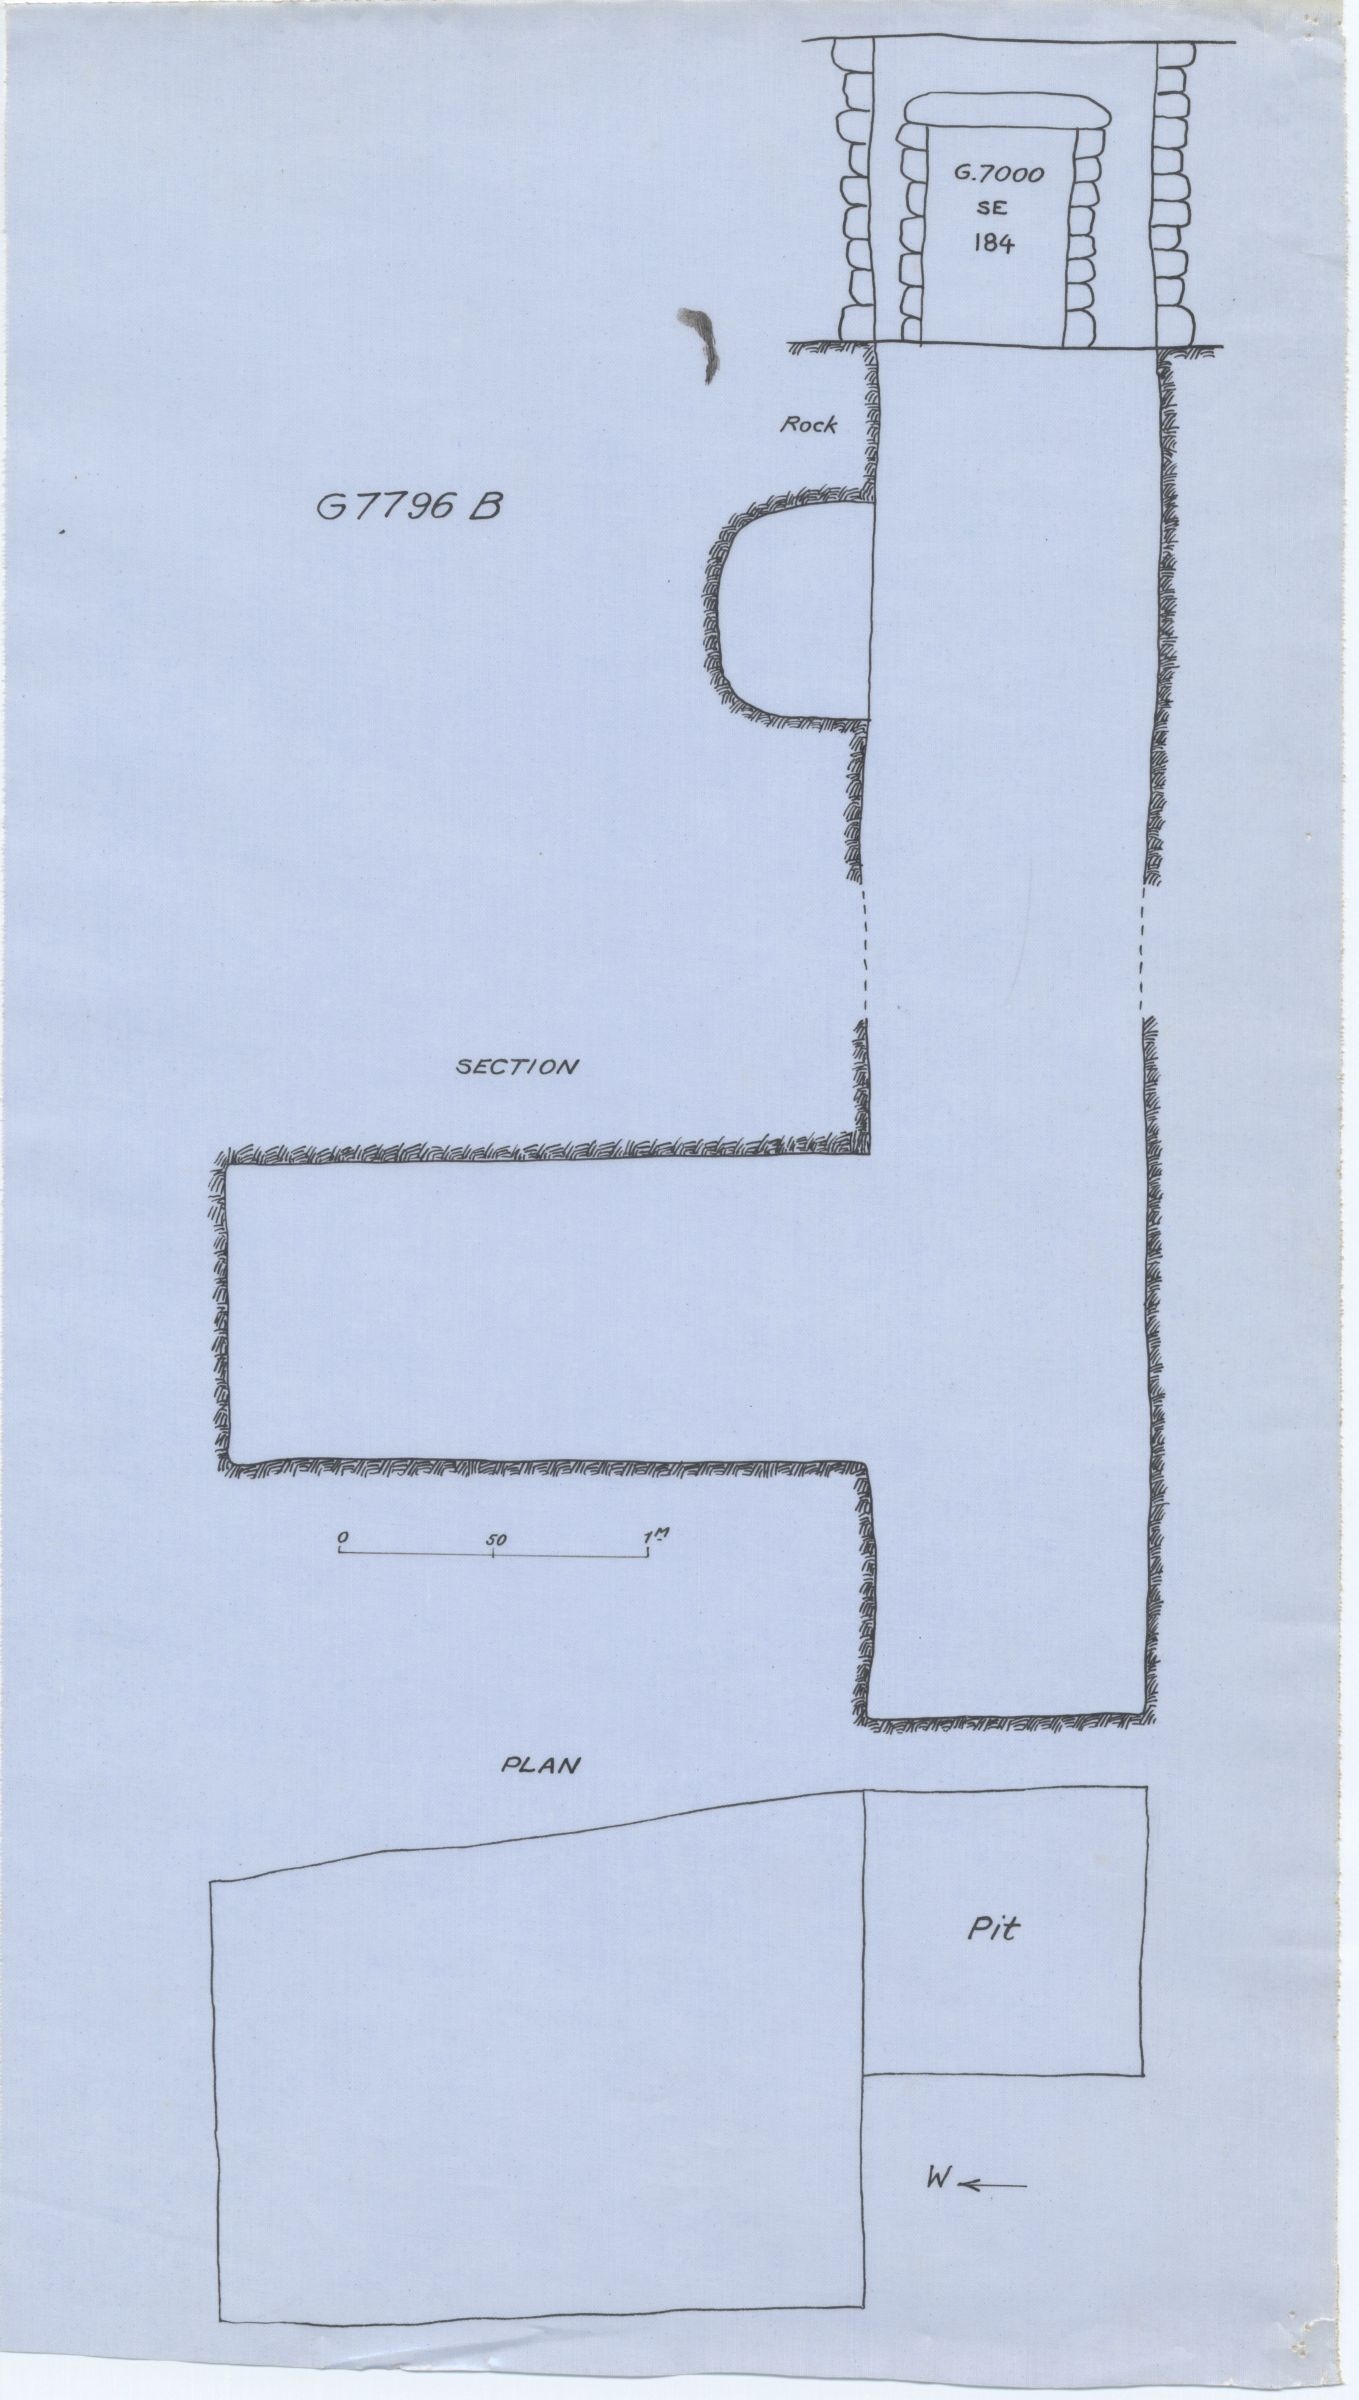 Maps and plans: G 7796, Shaft B